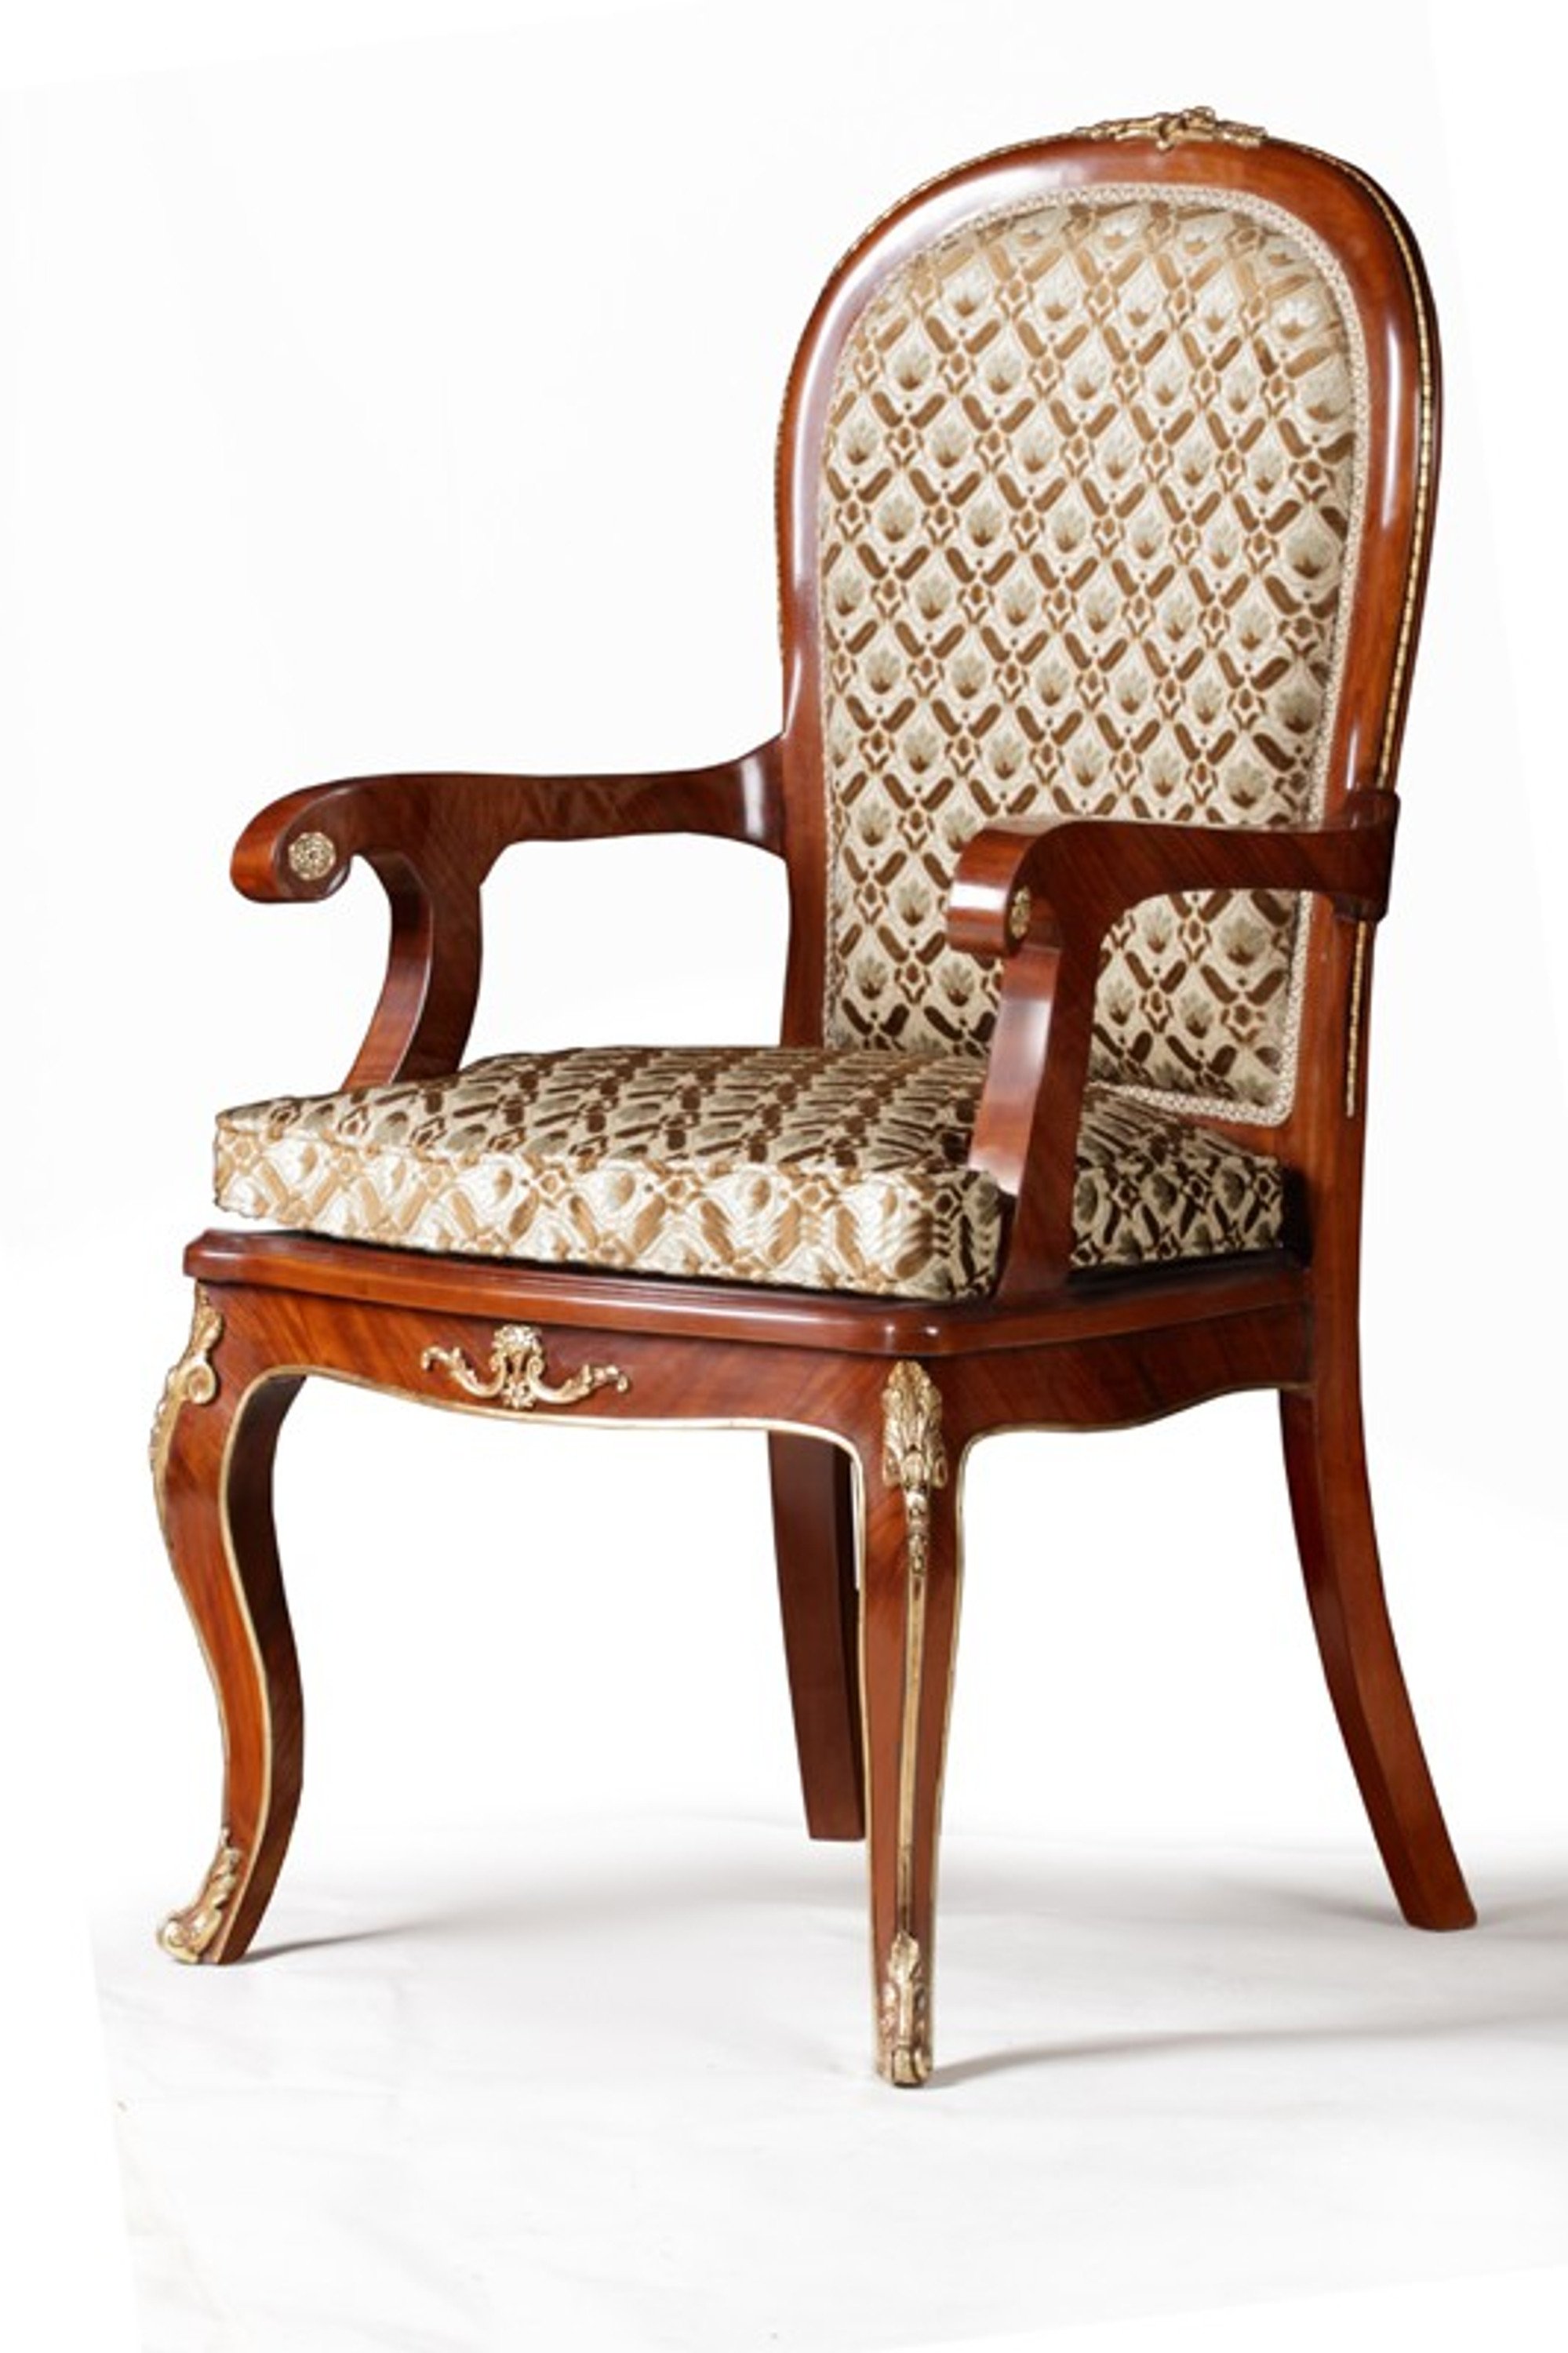 Baroque Armchair Carved Rococo Chair Antique Style MoCh1685